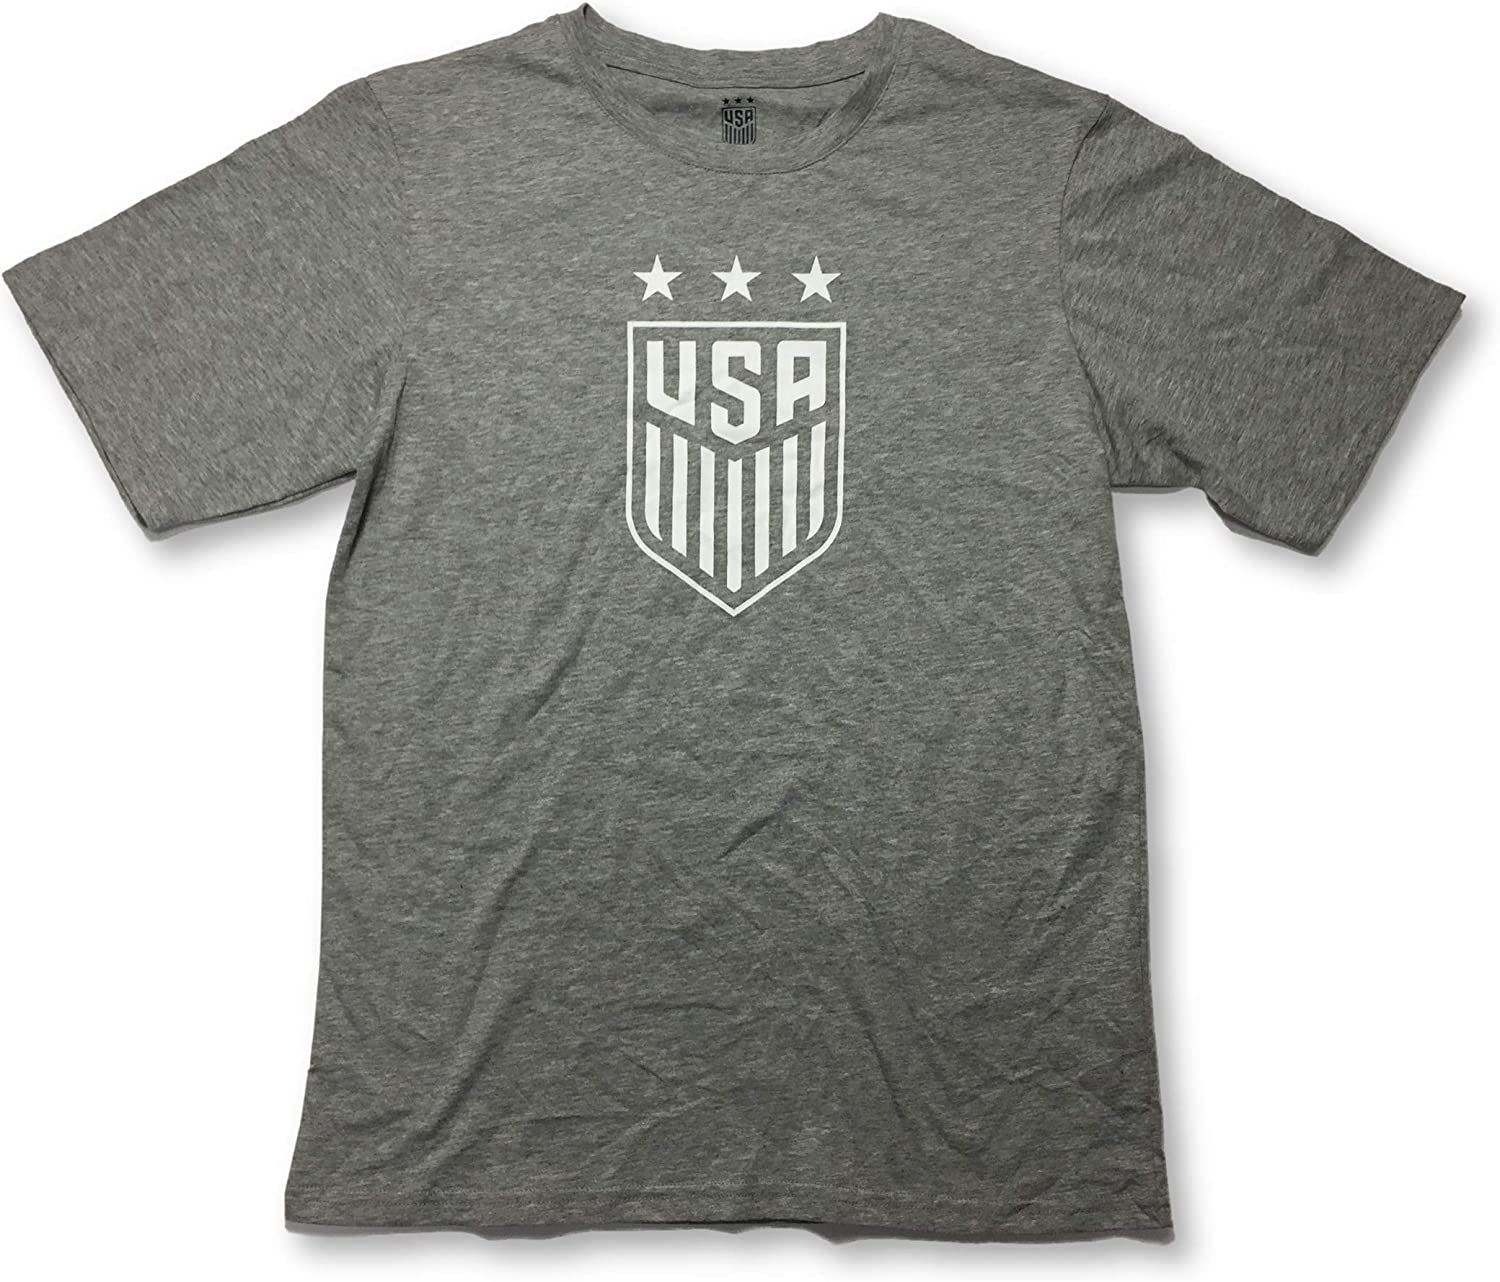 Icon Sports USA US National Team Soccer Crest Crew Neck Gray Adult T-Shirt